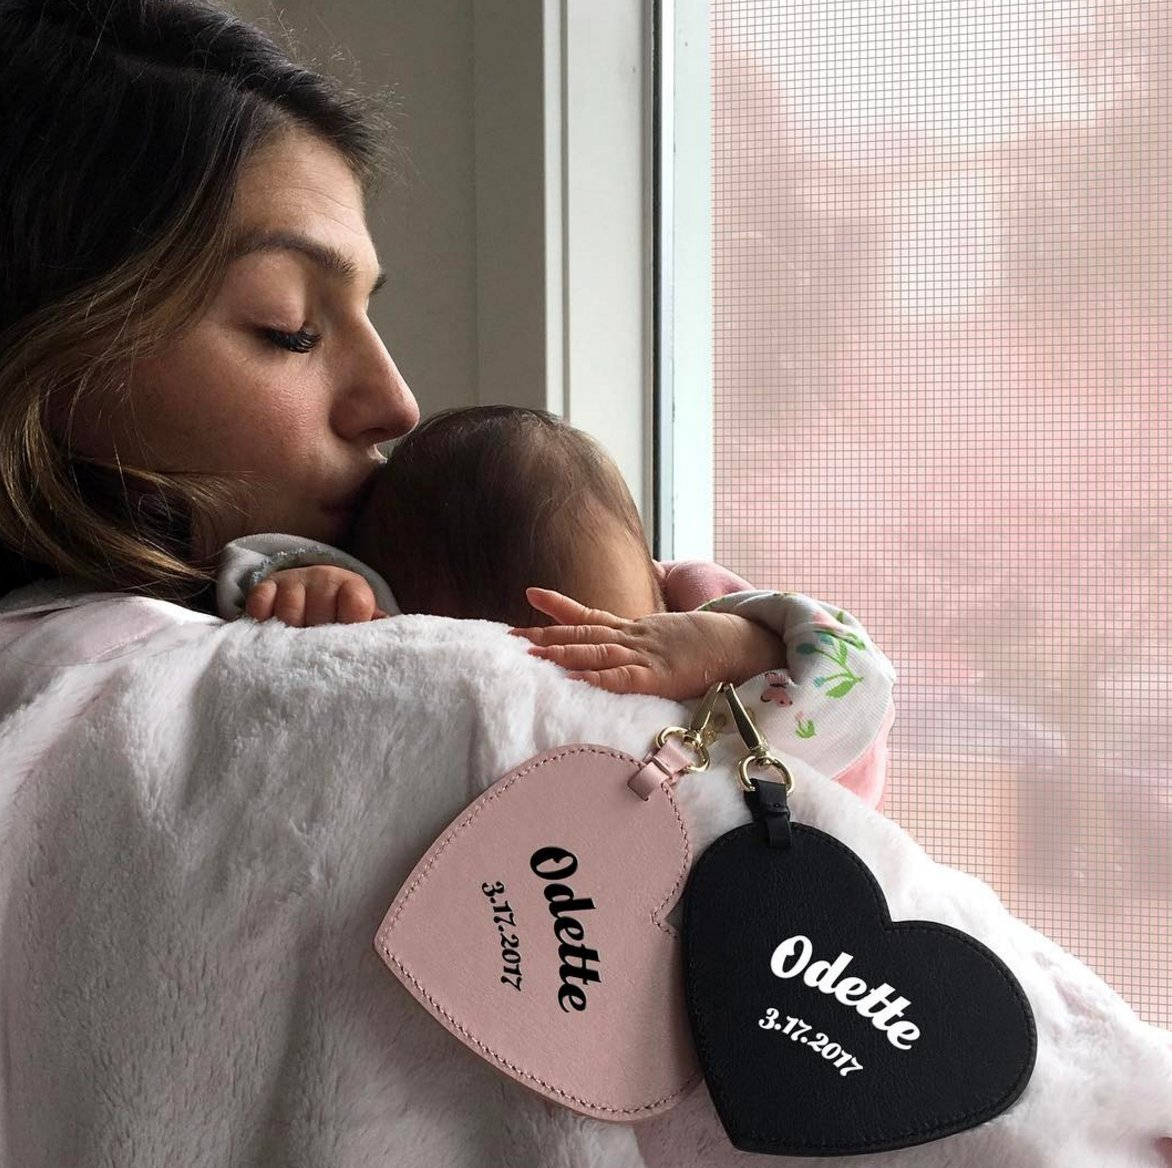 Genevieve and Jared Padalecki welcome the newest addition to their fam...